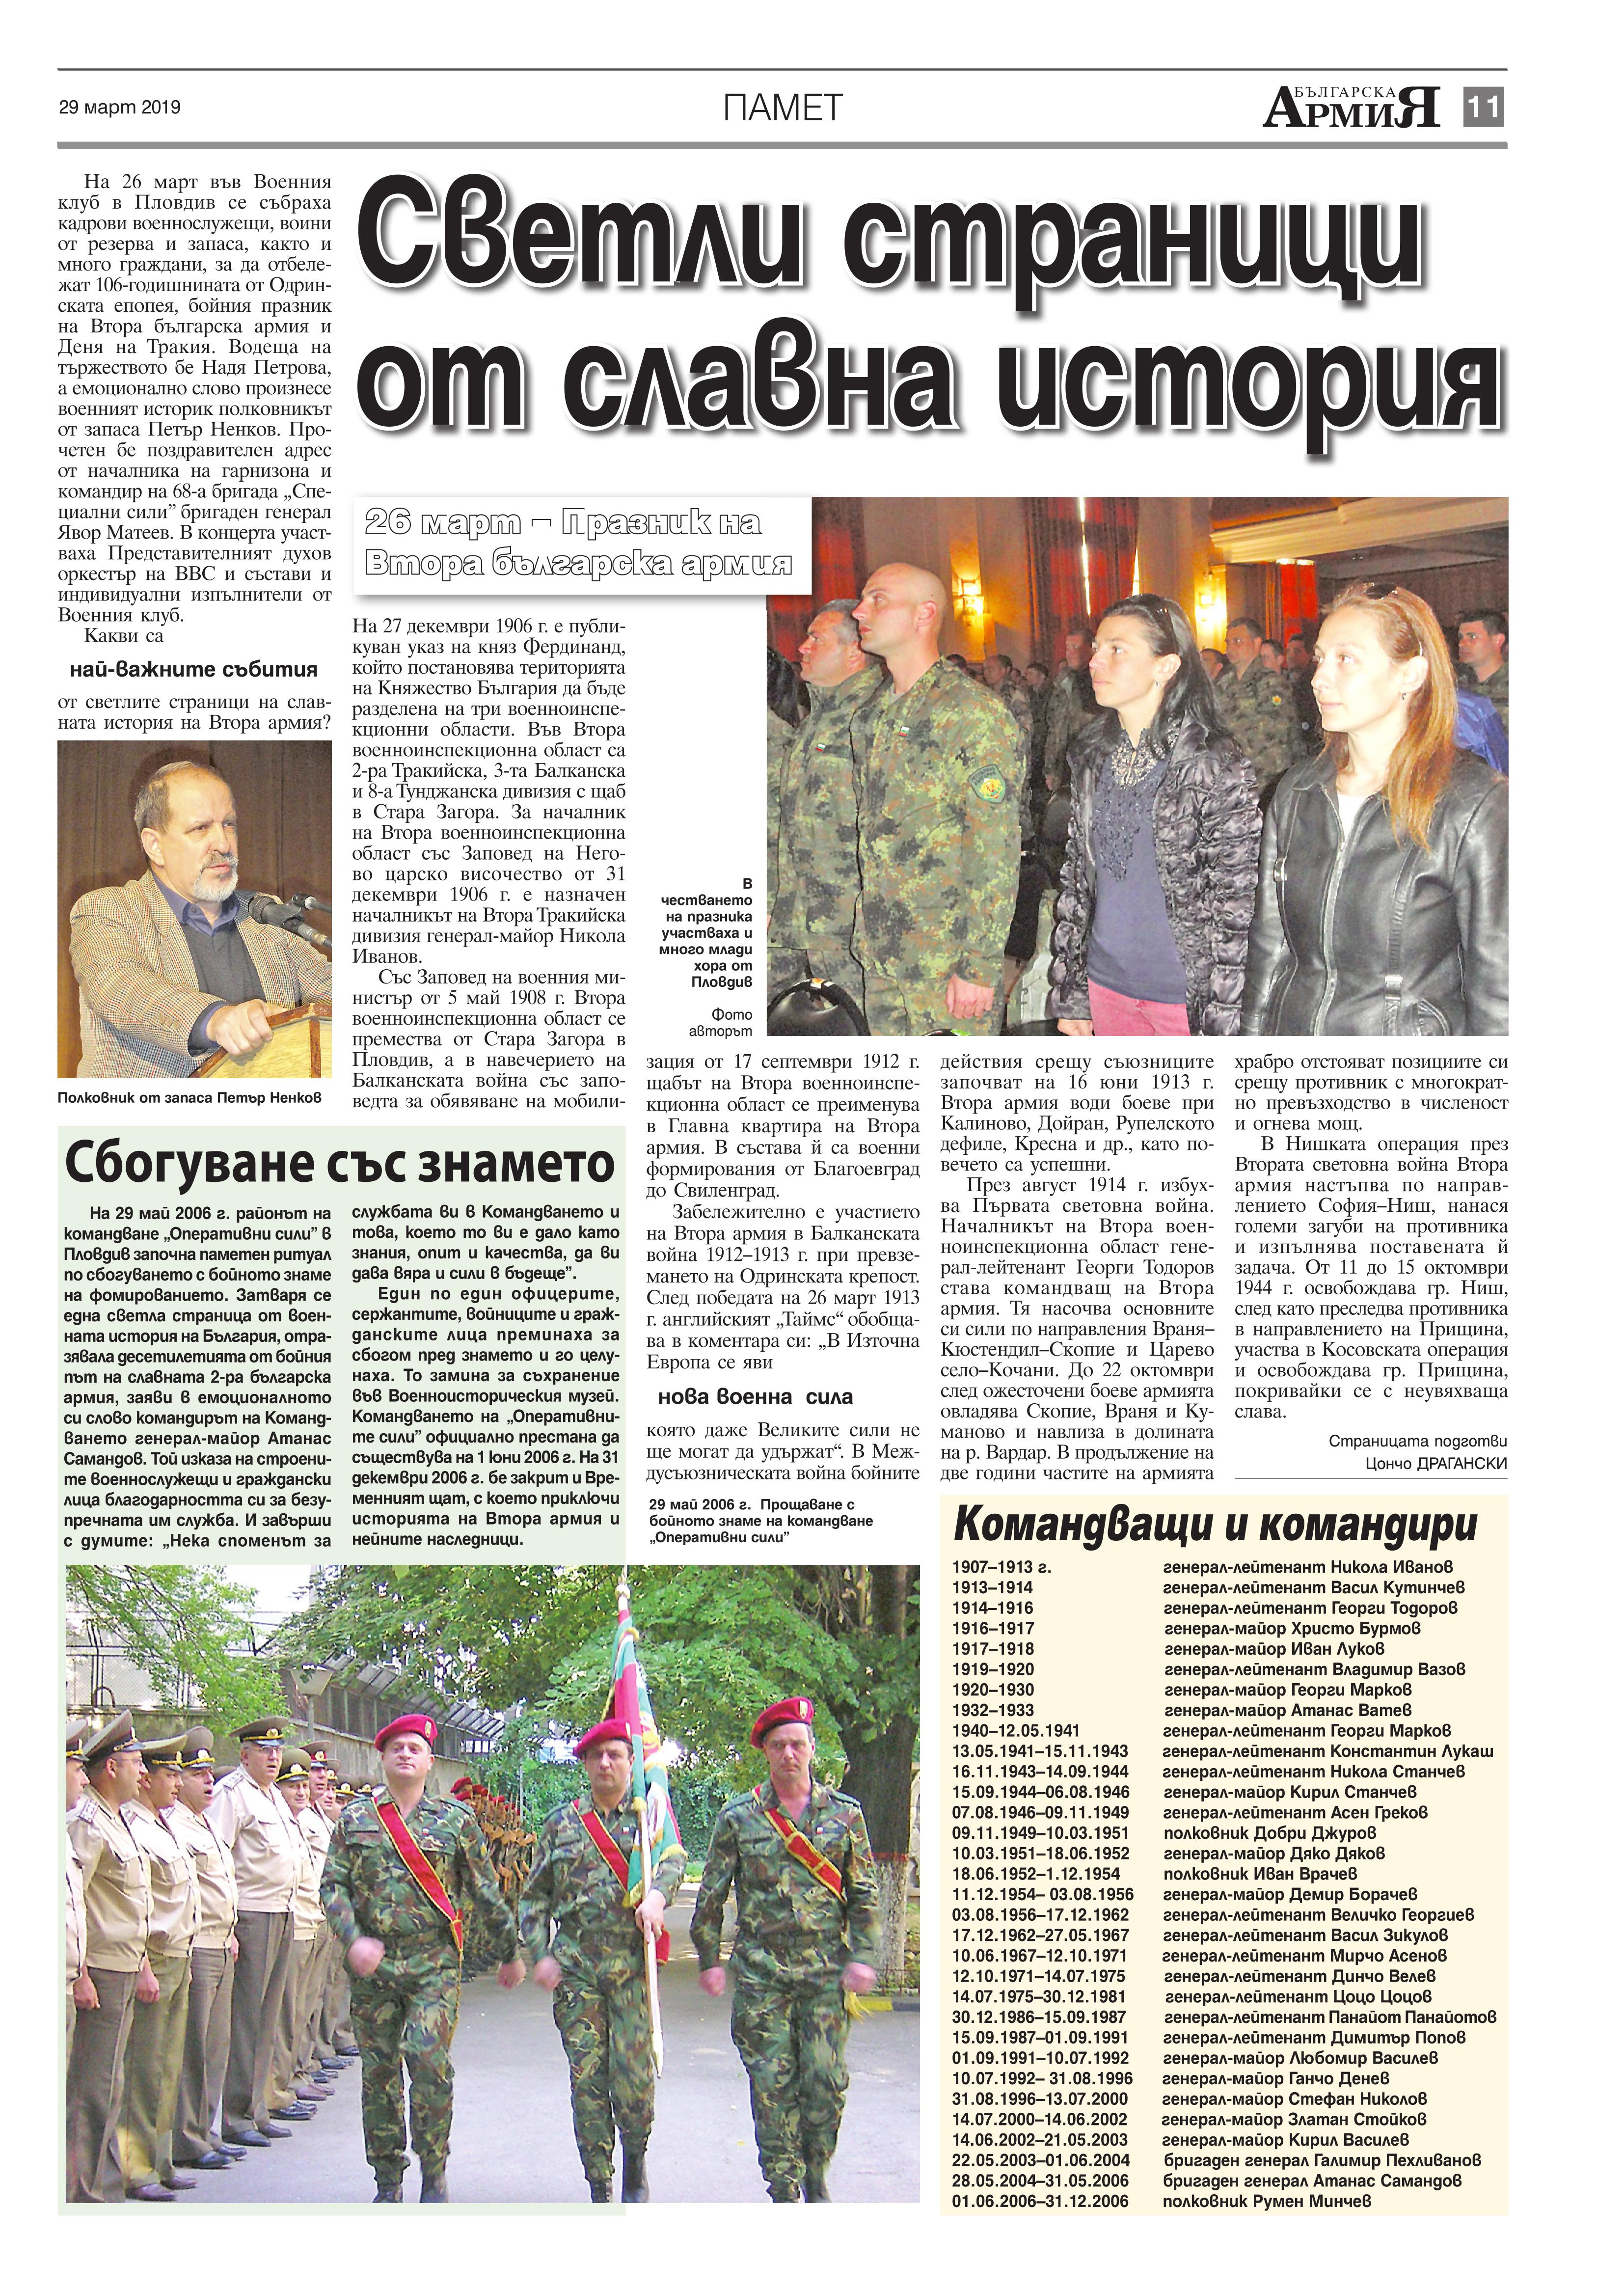 https://armymedia.bg/wp-content/uploads/2015/06/11.page1_-89.jpg